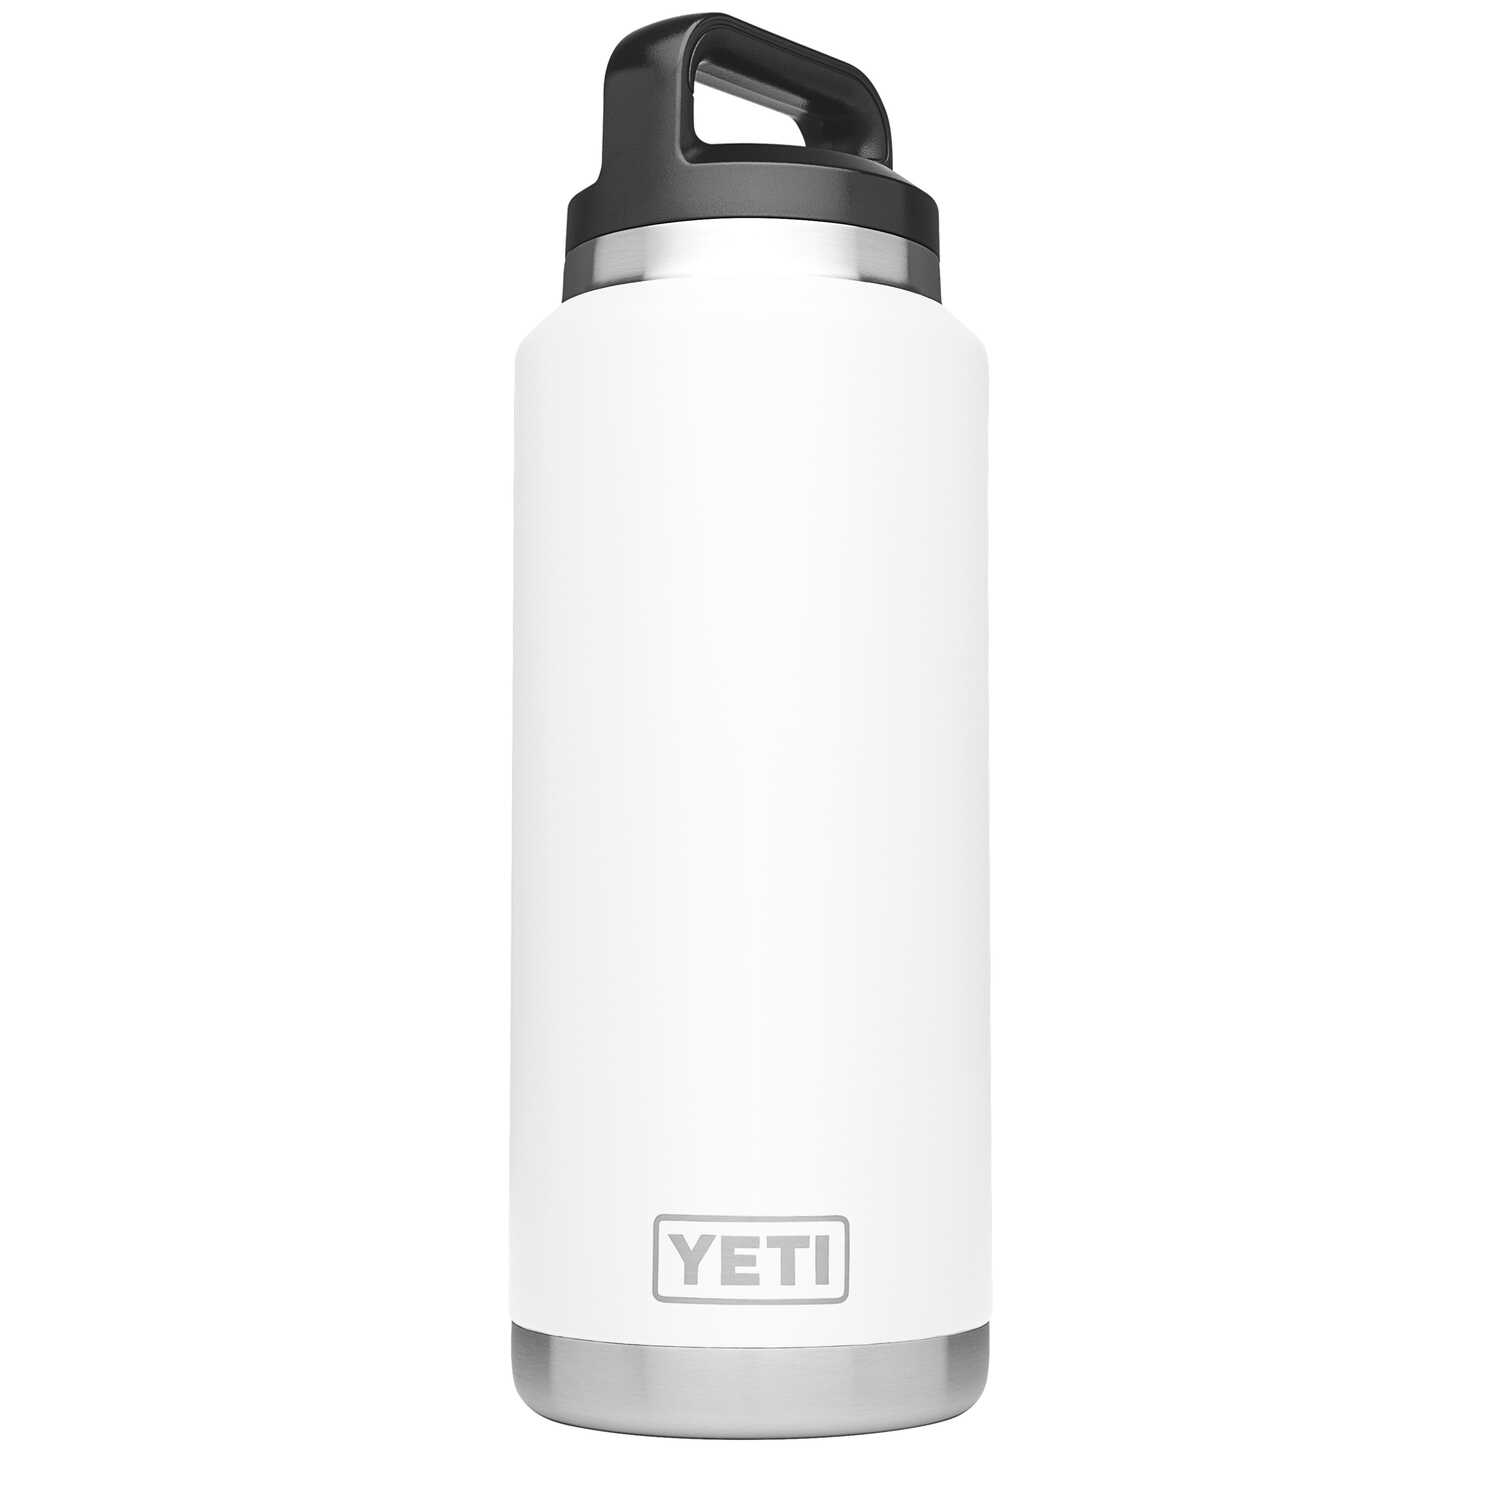 YETI  Rambler  White  Stainless Steel  BPA Free 36 oz. Beverage Bottle